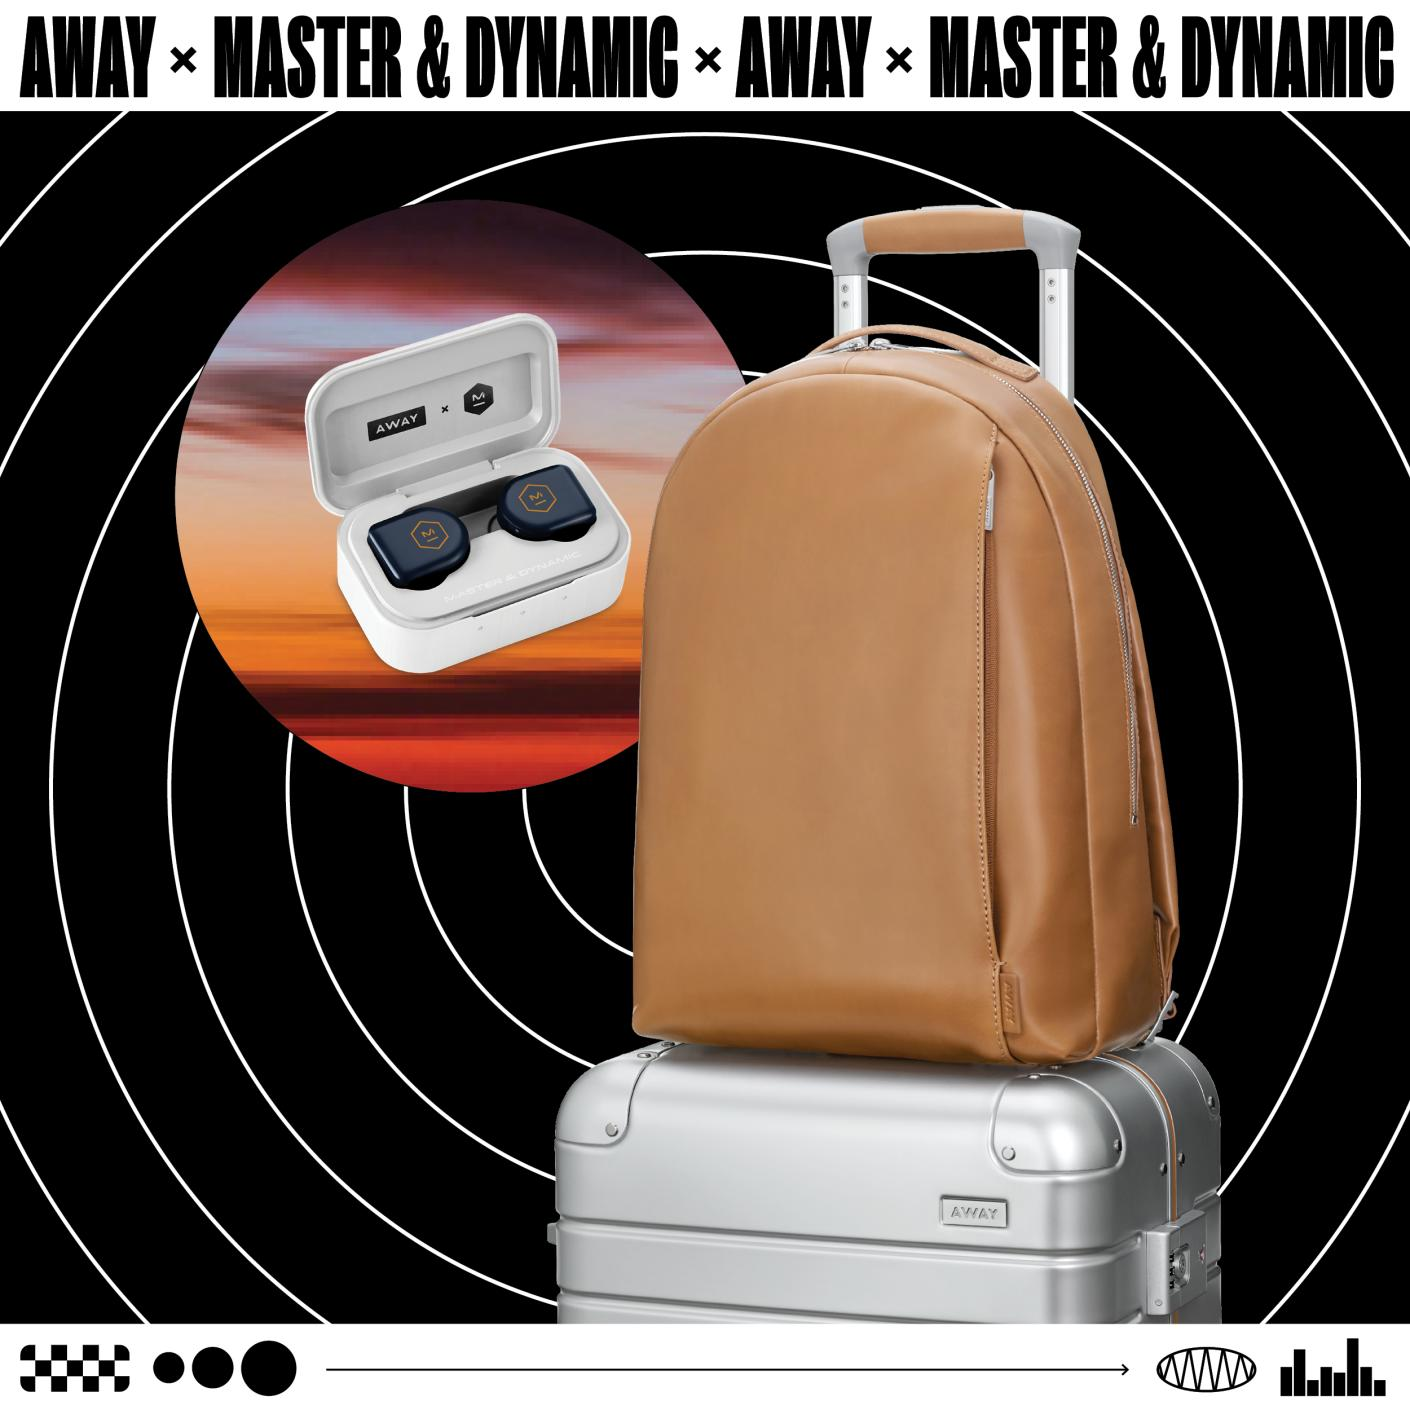 Away x Master & Dynamic products with circular sound waves on a black backdrop. Headphones (left), tan backpack (right) on top of Aluminum suitcase.